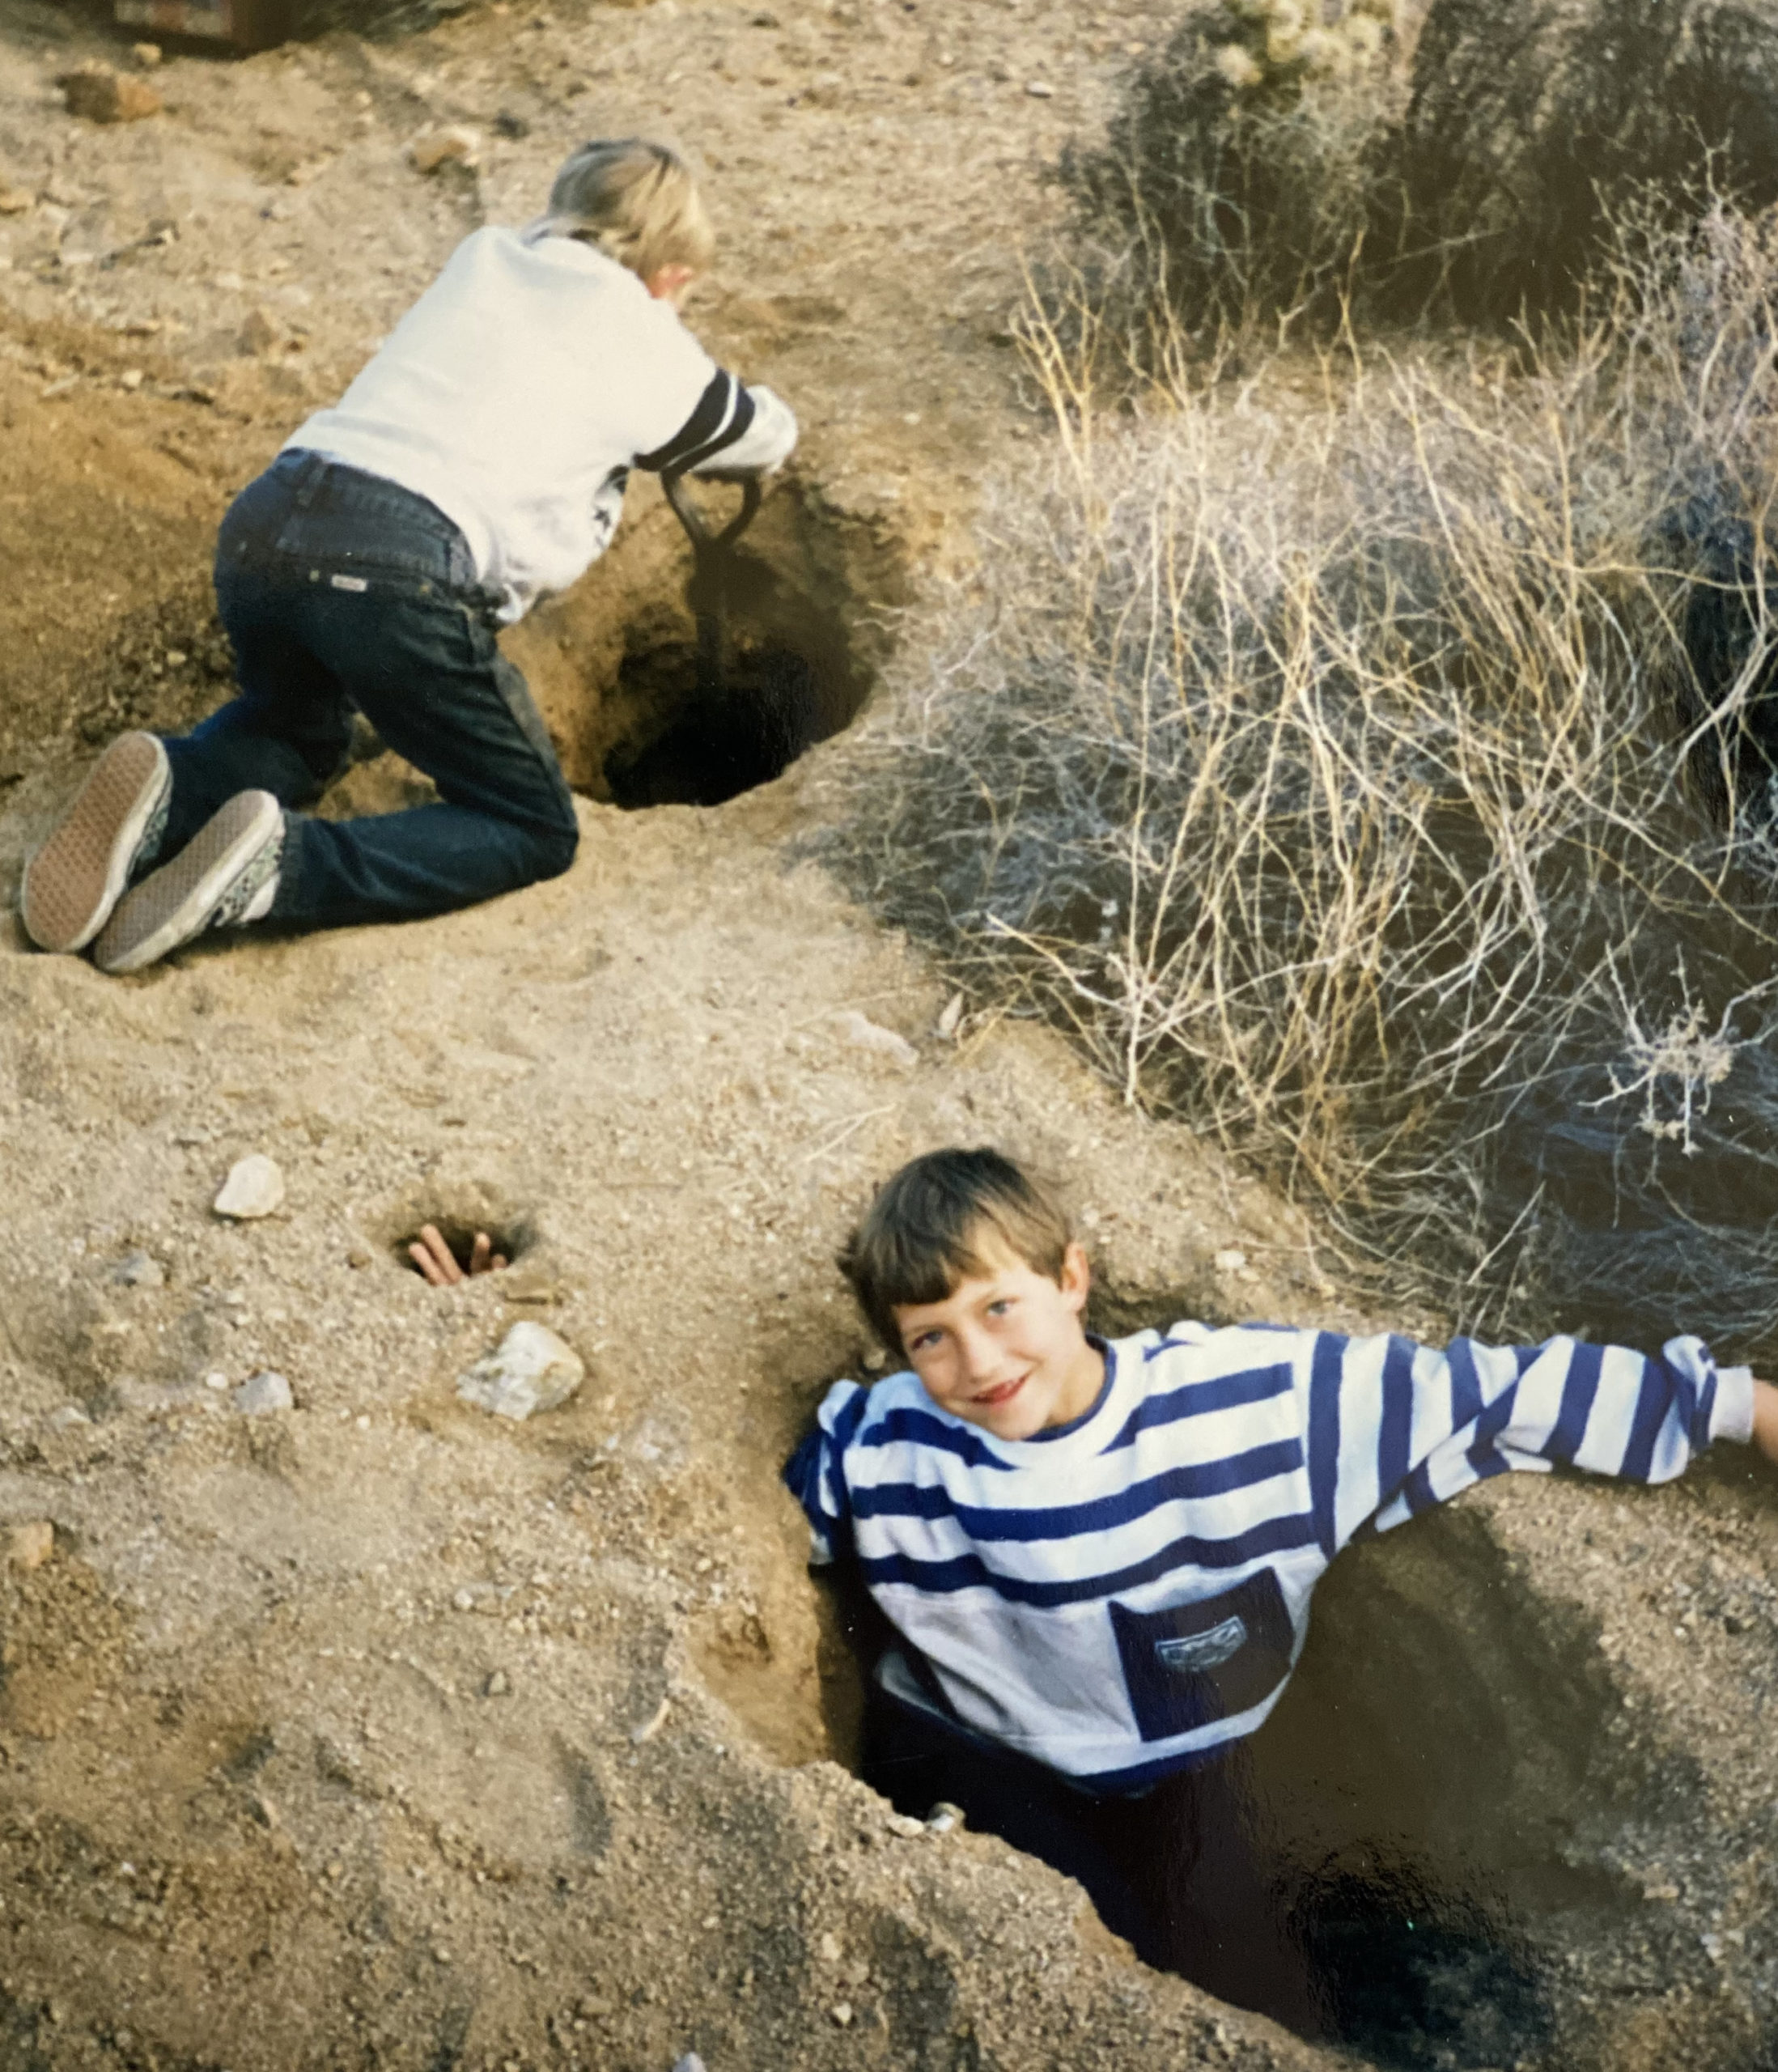 Cristian Grunt and friend digging holes in the desert